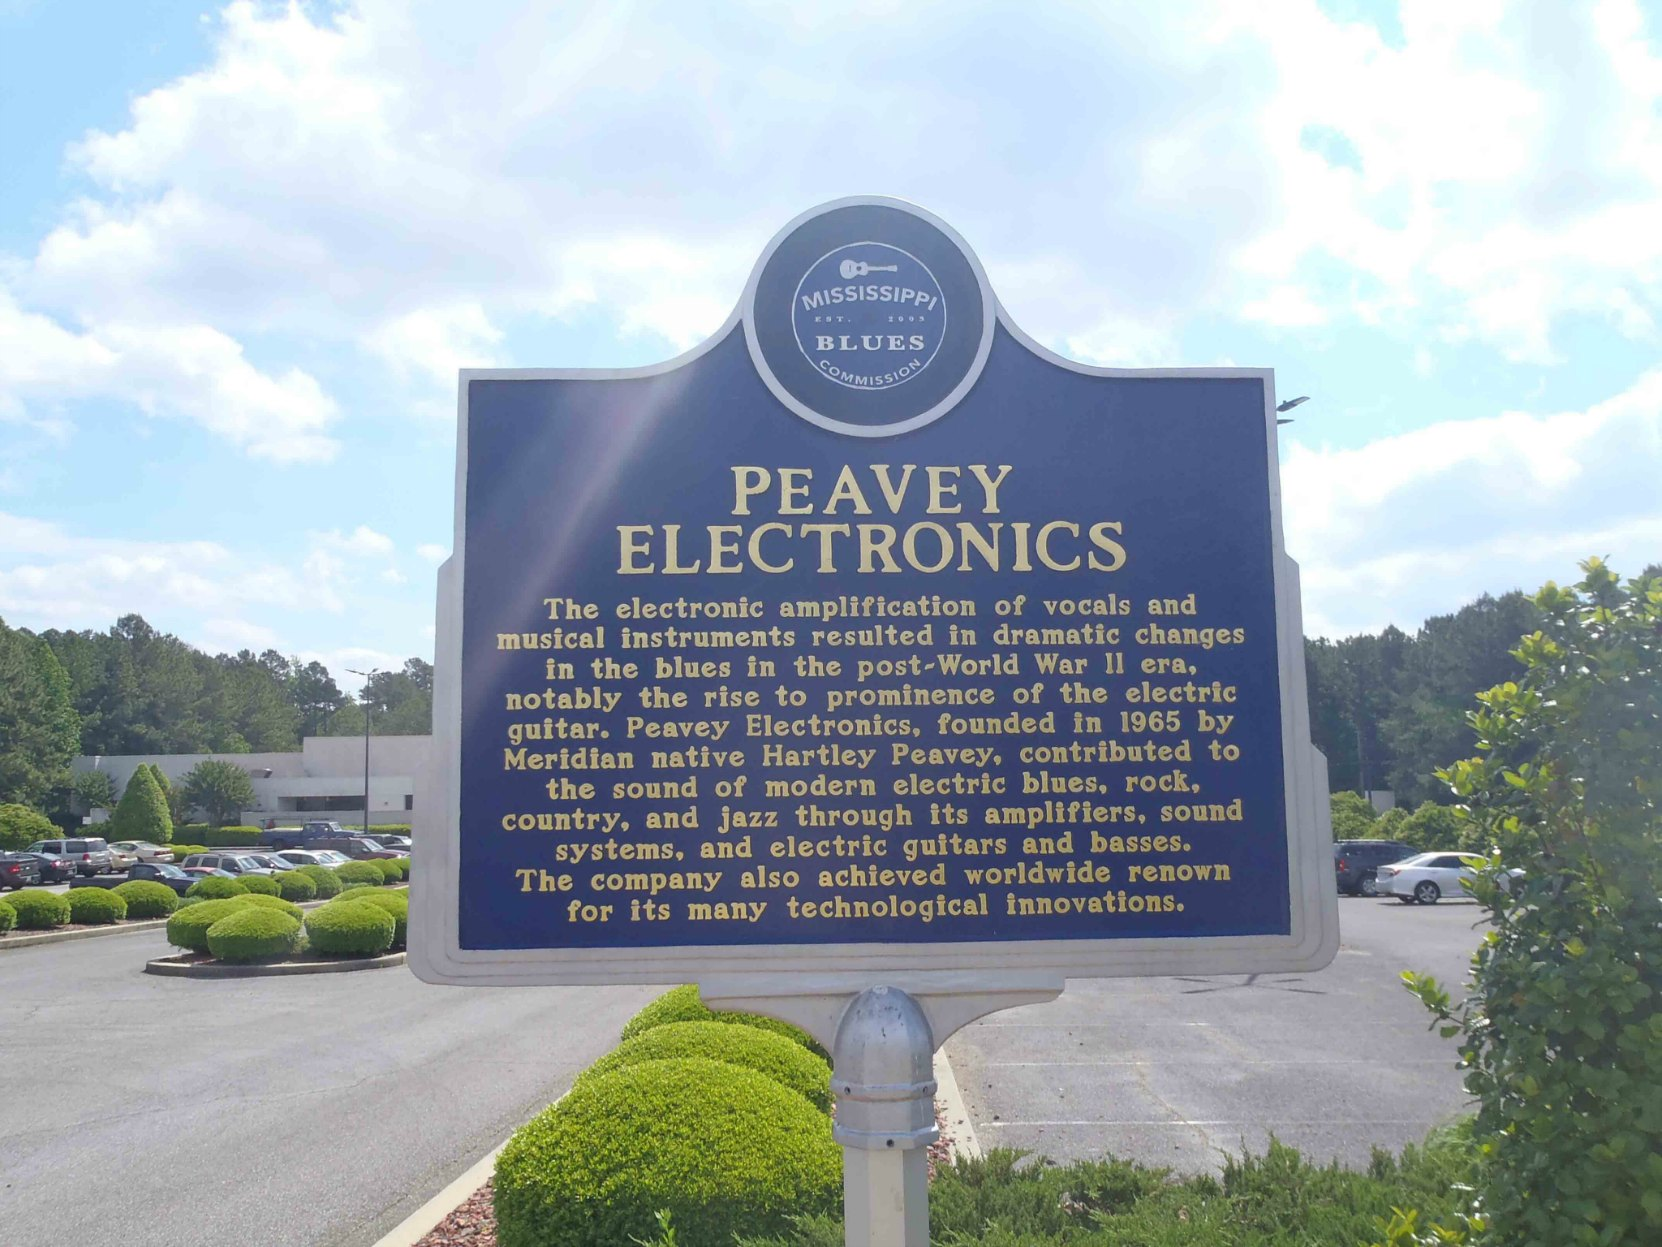 Mississippi Blues Trail marker at Peavey Electronics, Meridian, Mississippi